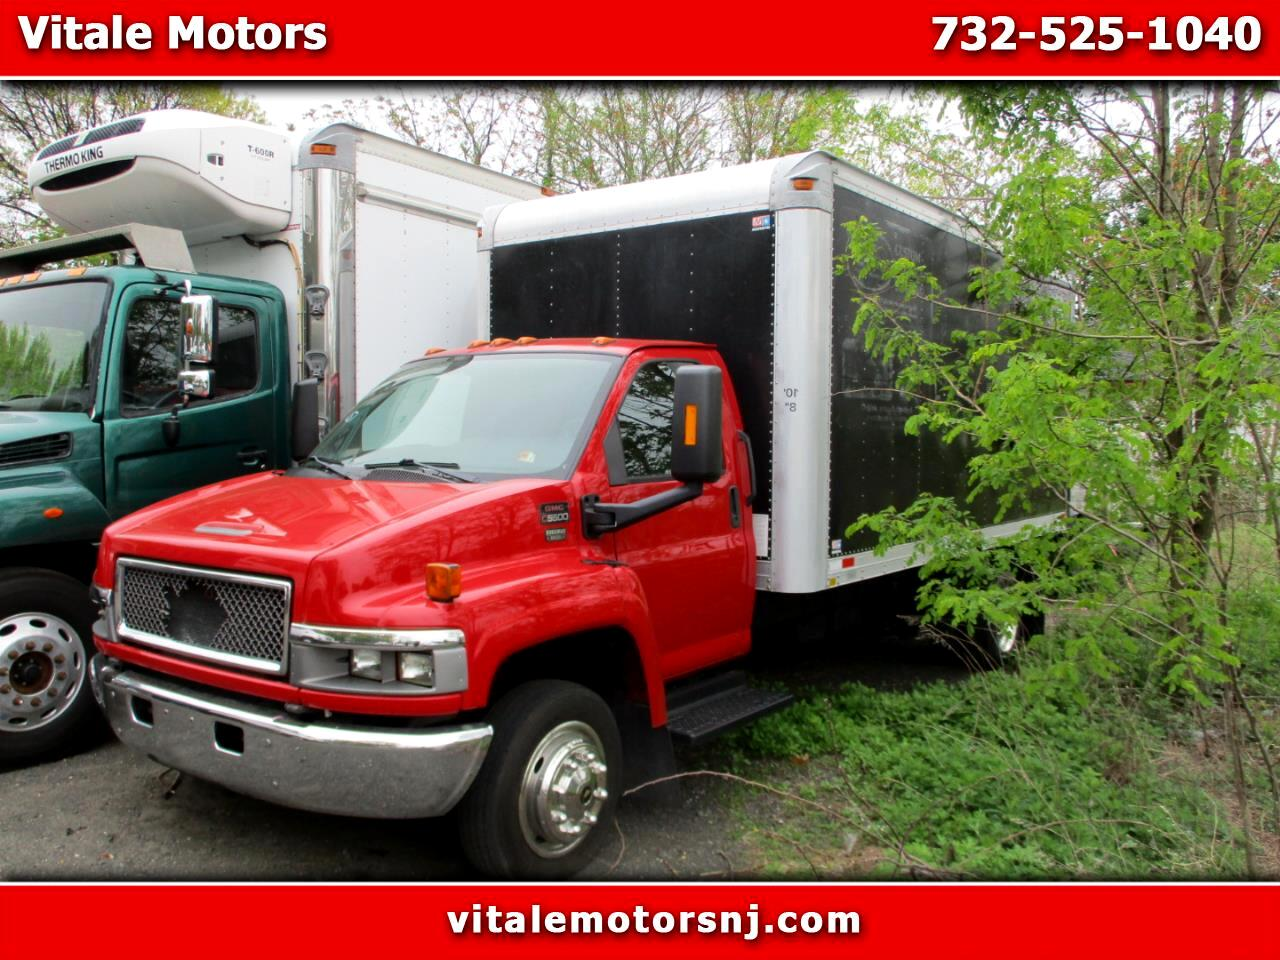 2005 GMC C5C042 16 FOOT BOX TRUCK , DIESEL